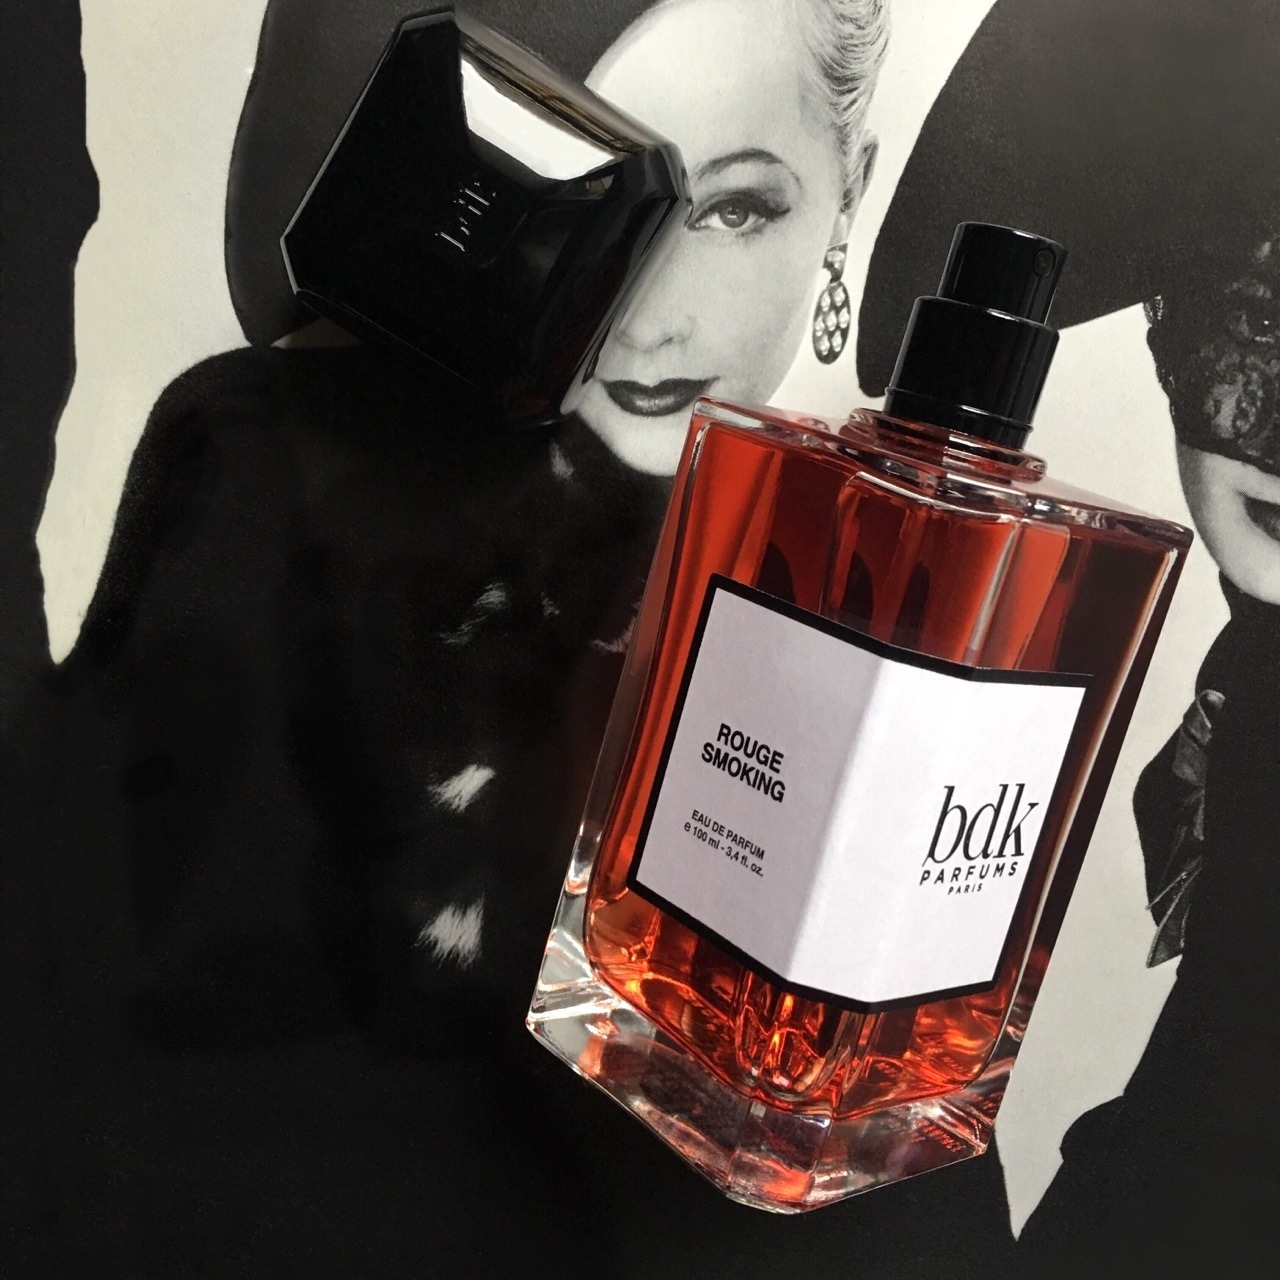 The Beauty Cove Il Profumo Rouge Smoking Di Bdk Parfums